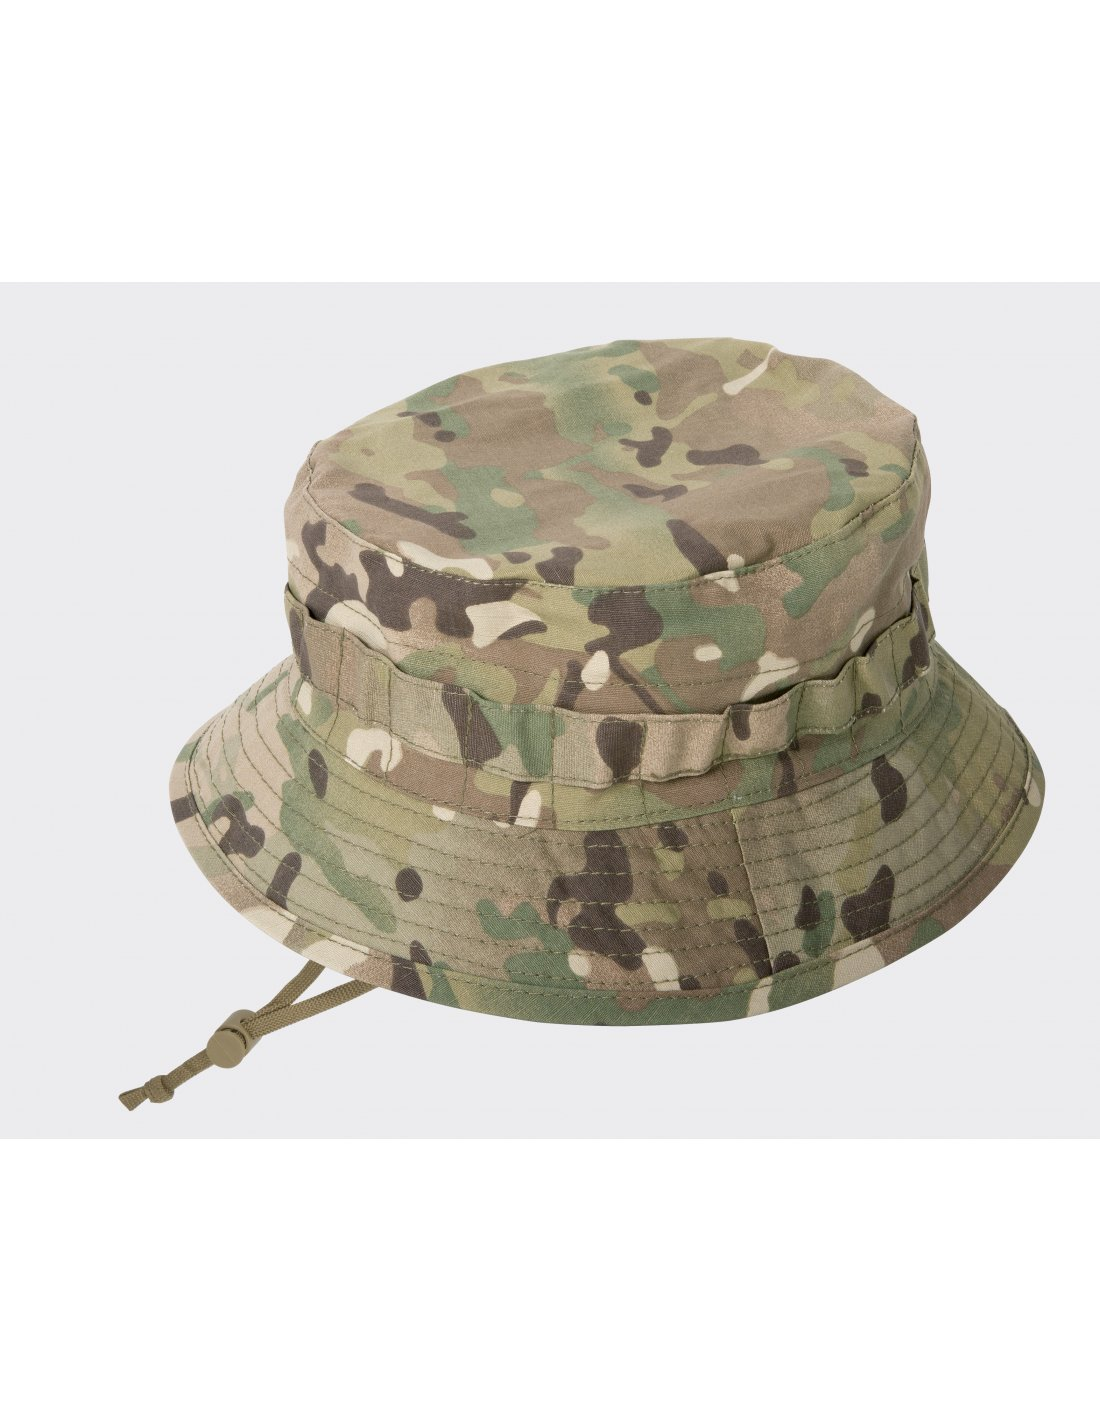 ee9e85f9e9d02 S95 hat from Helikon-tex. helikon soldier 95 hat boonie british army